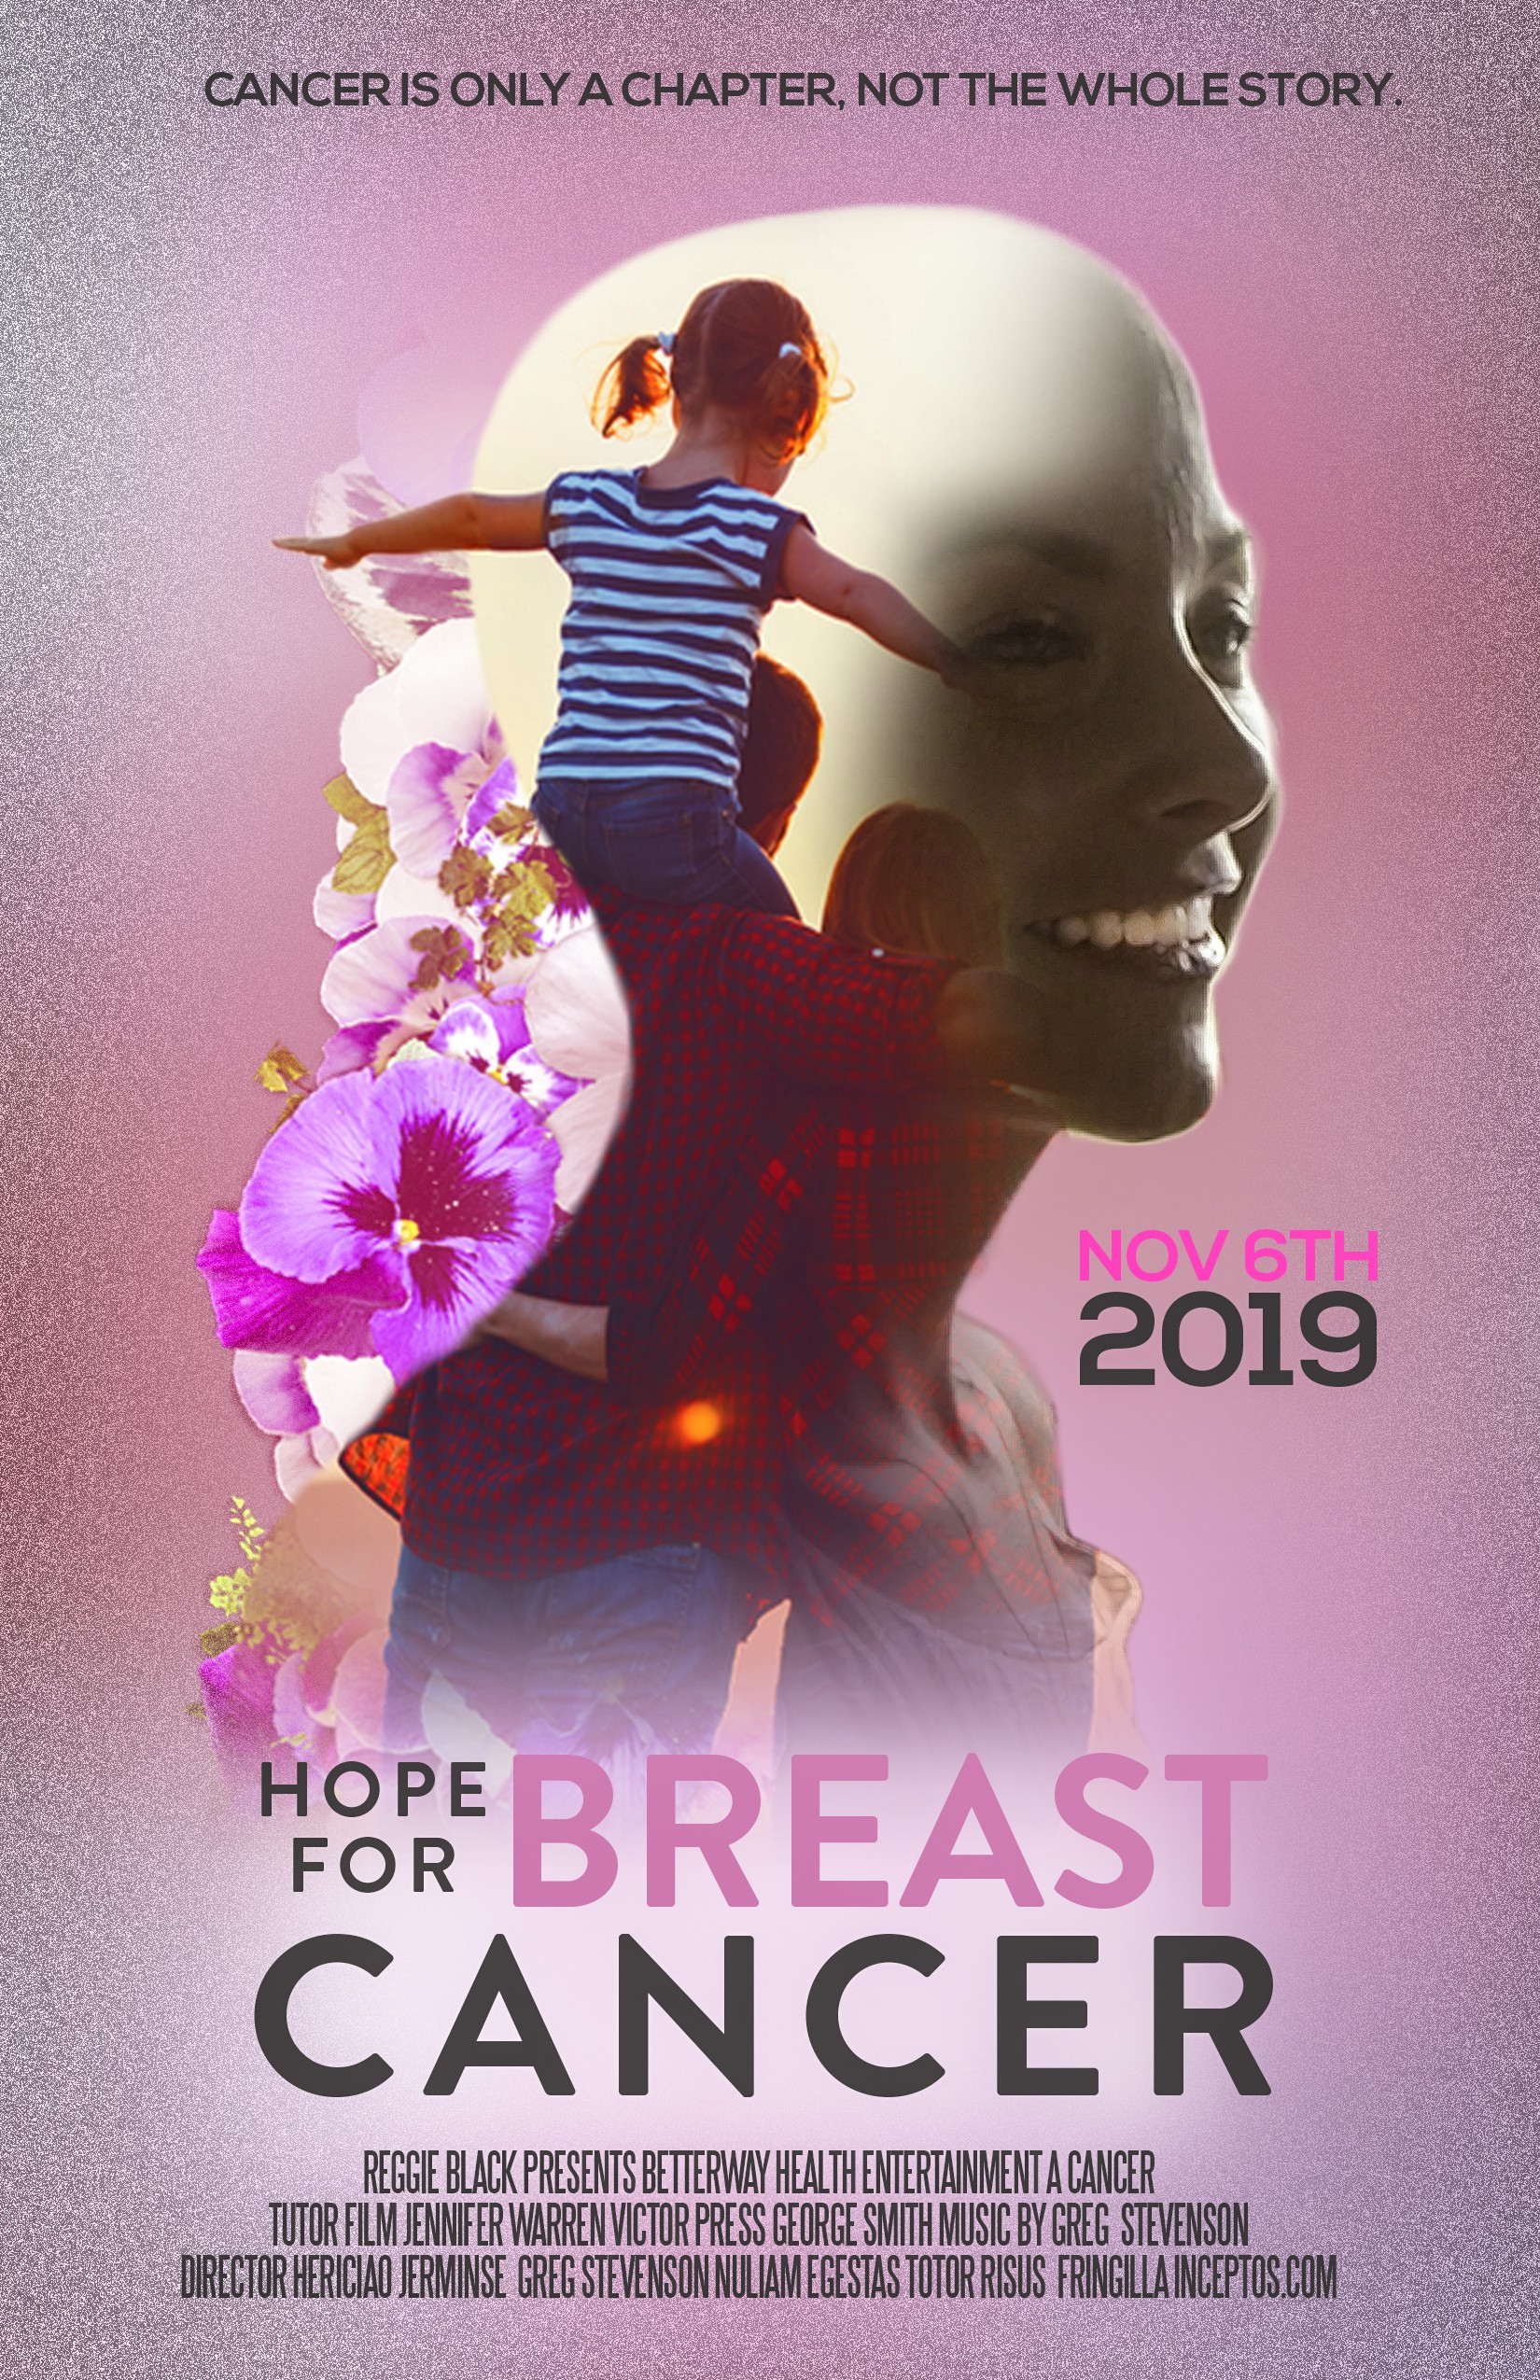 Movie Poster for a Documentary about Breast Cancer